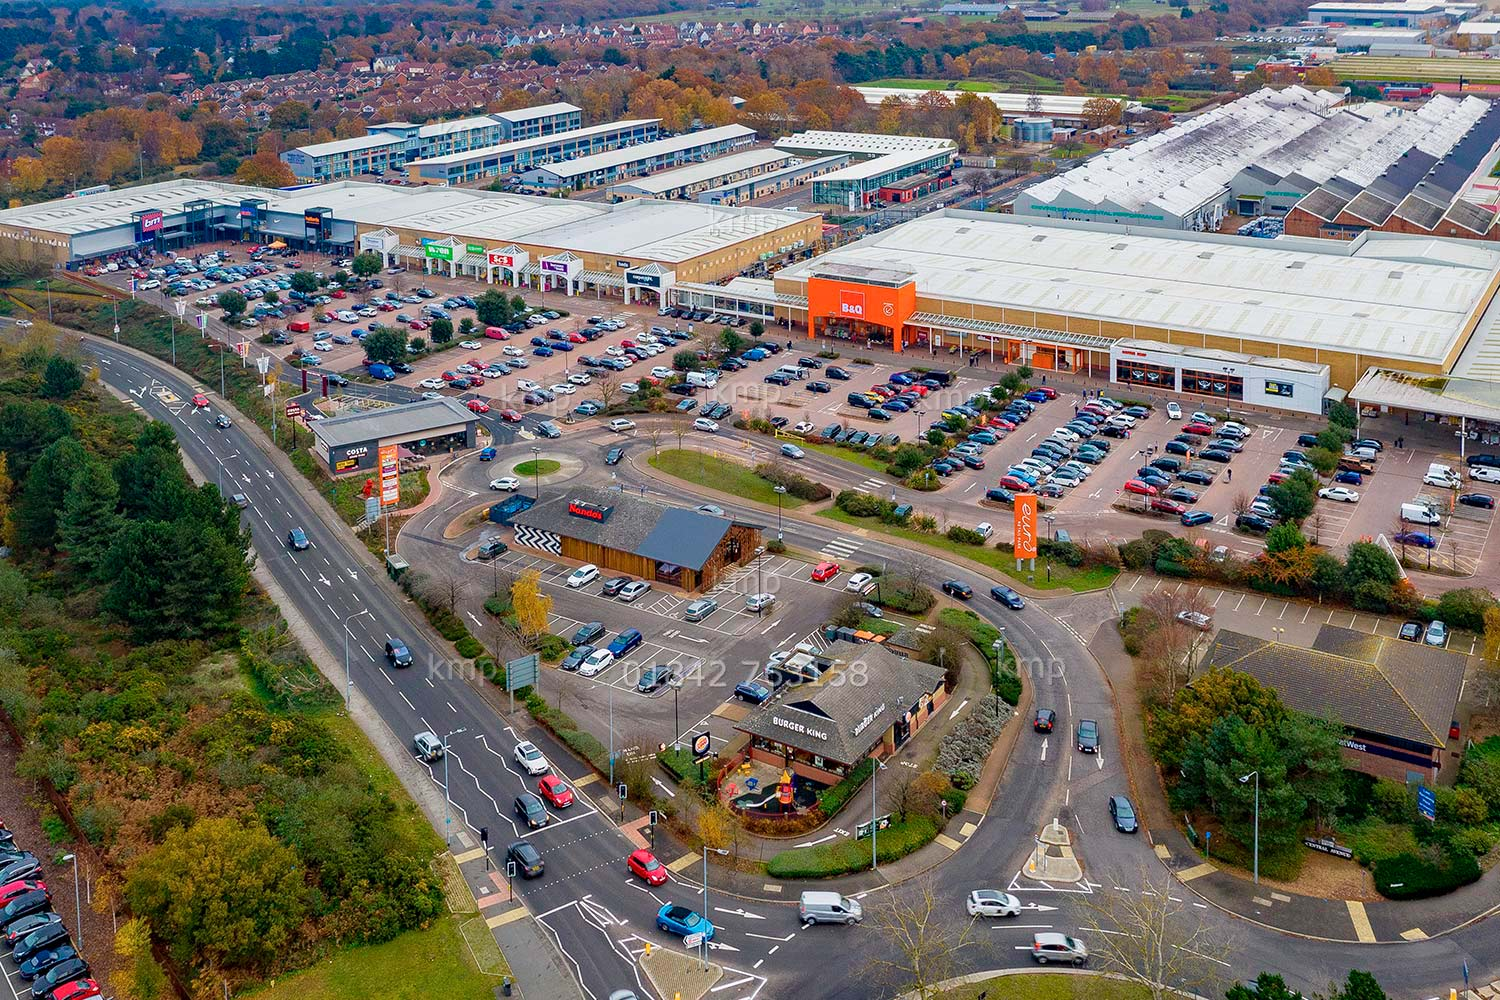 Commercial aerial photography of Ipswich retail park photographed using a drone. Photo: Keith Mindham Photography